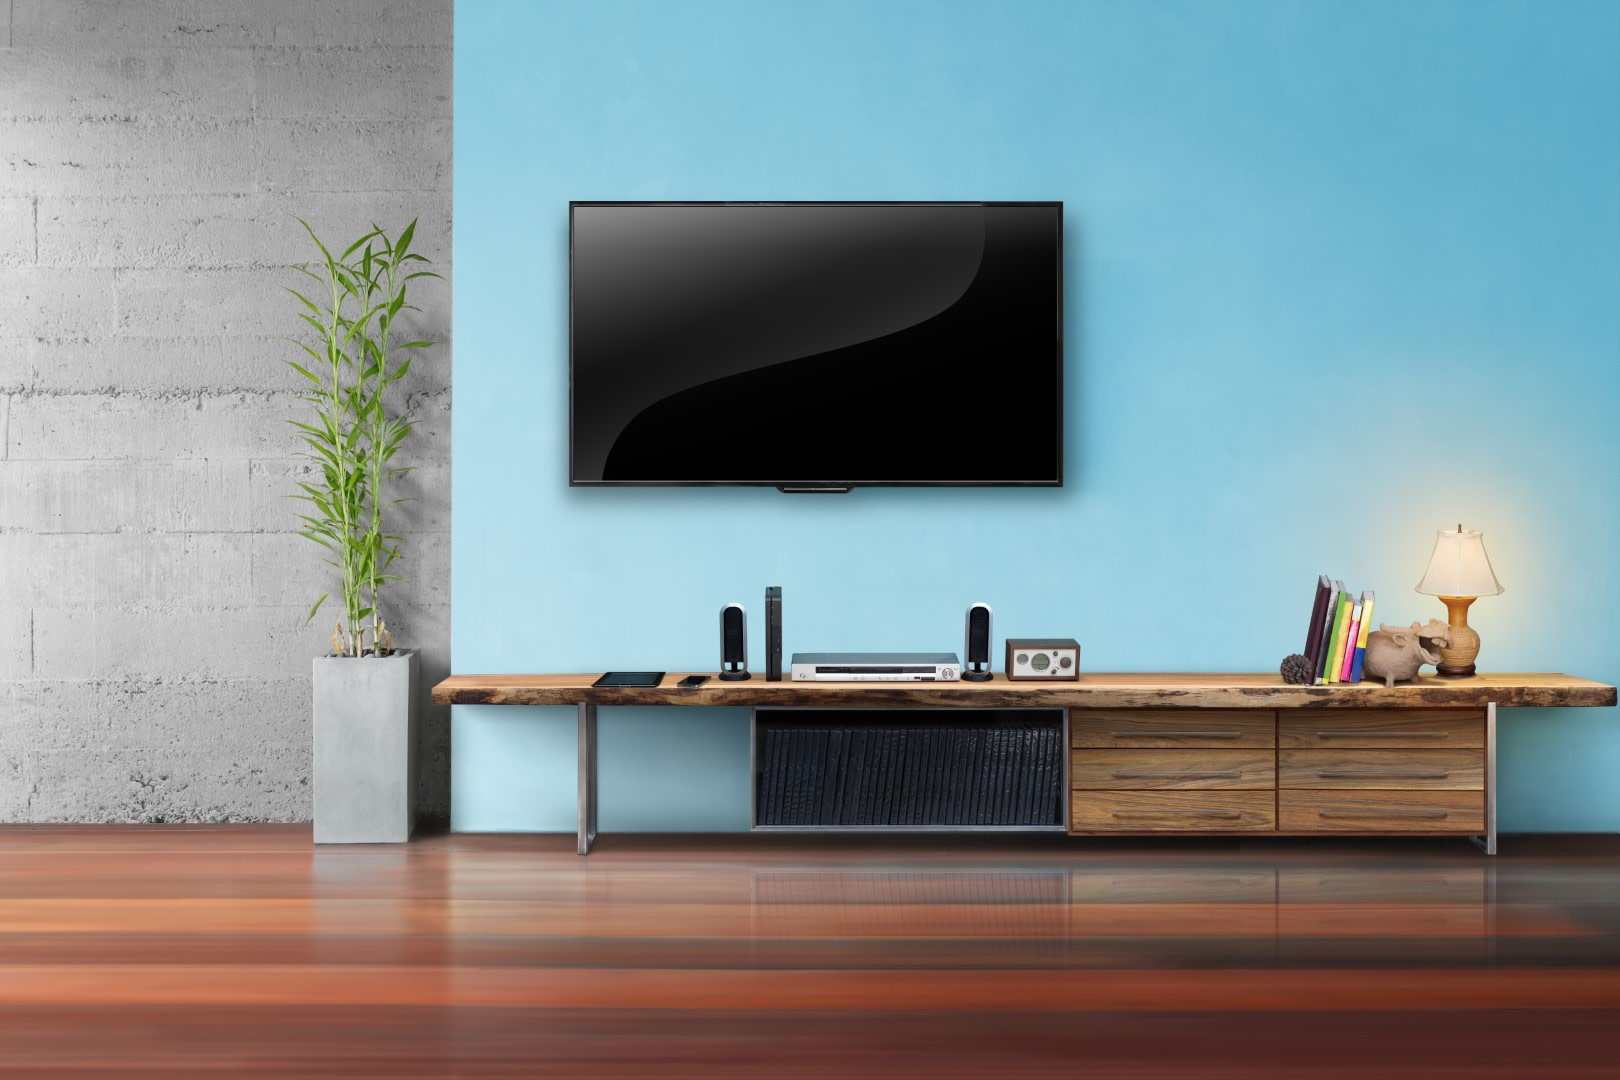 An image related to Top Flat Screen 60Hz TVs